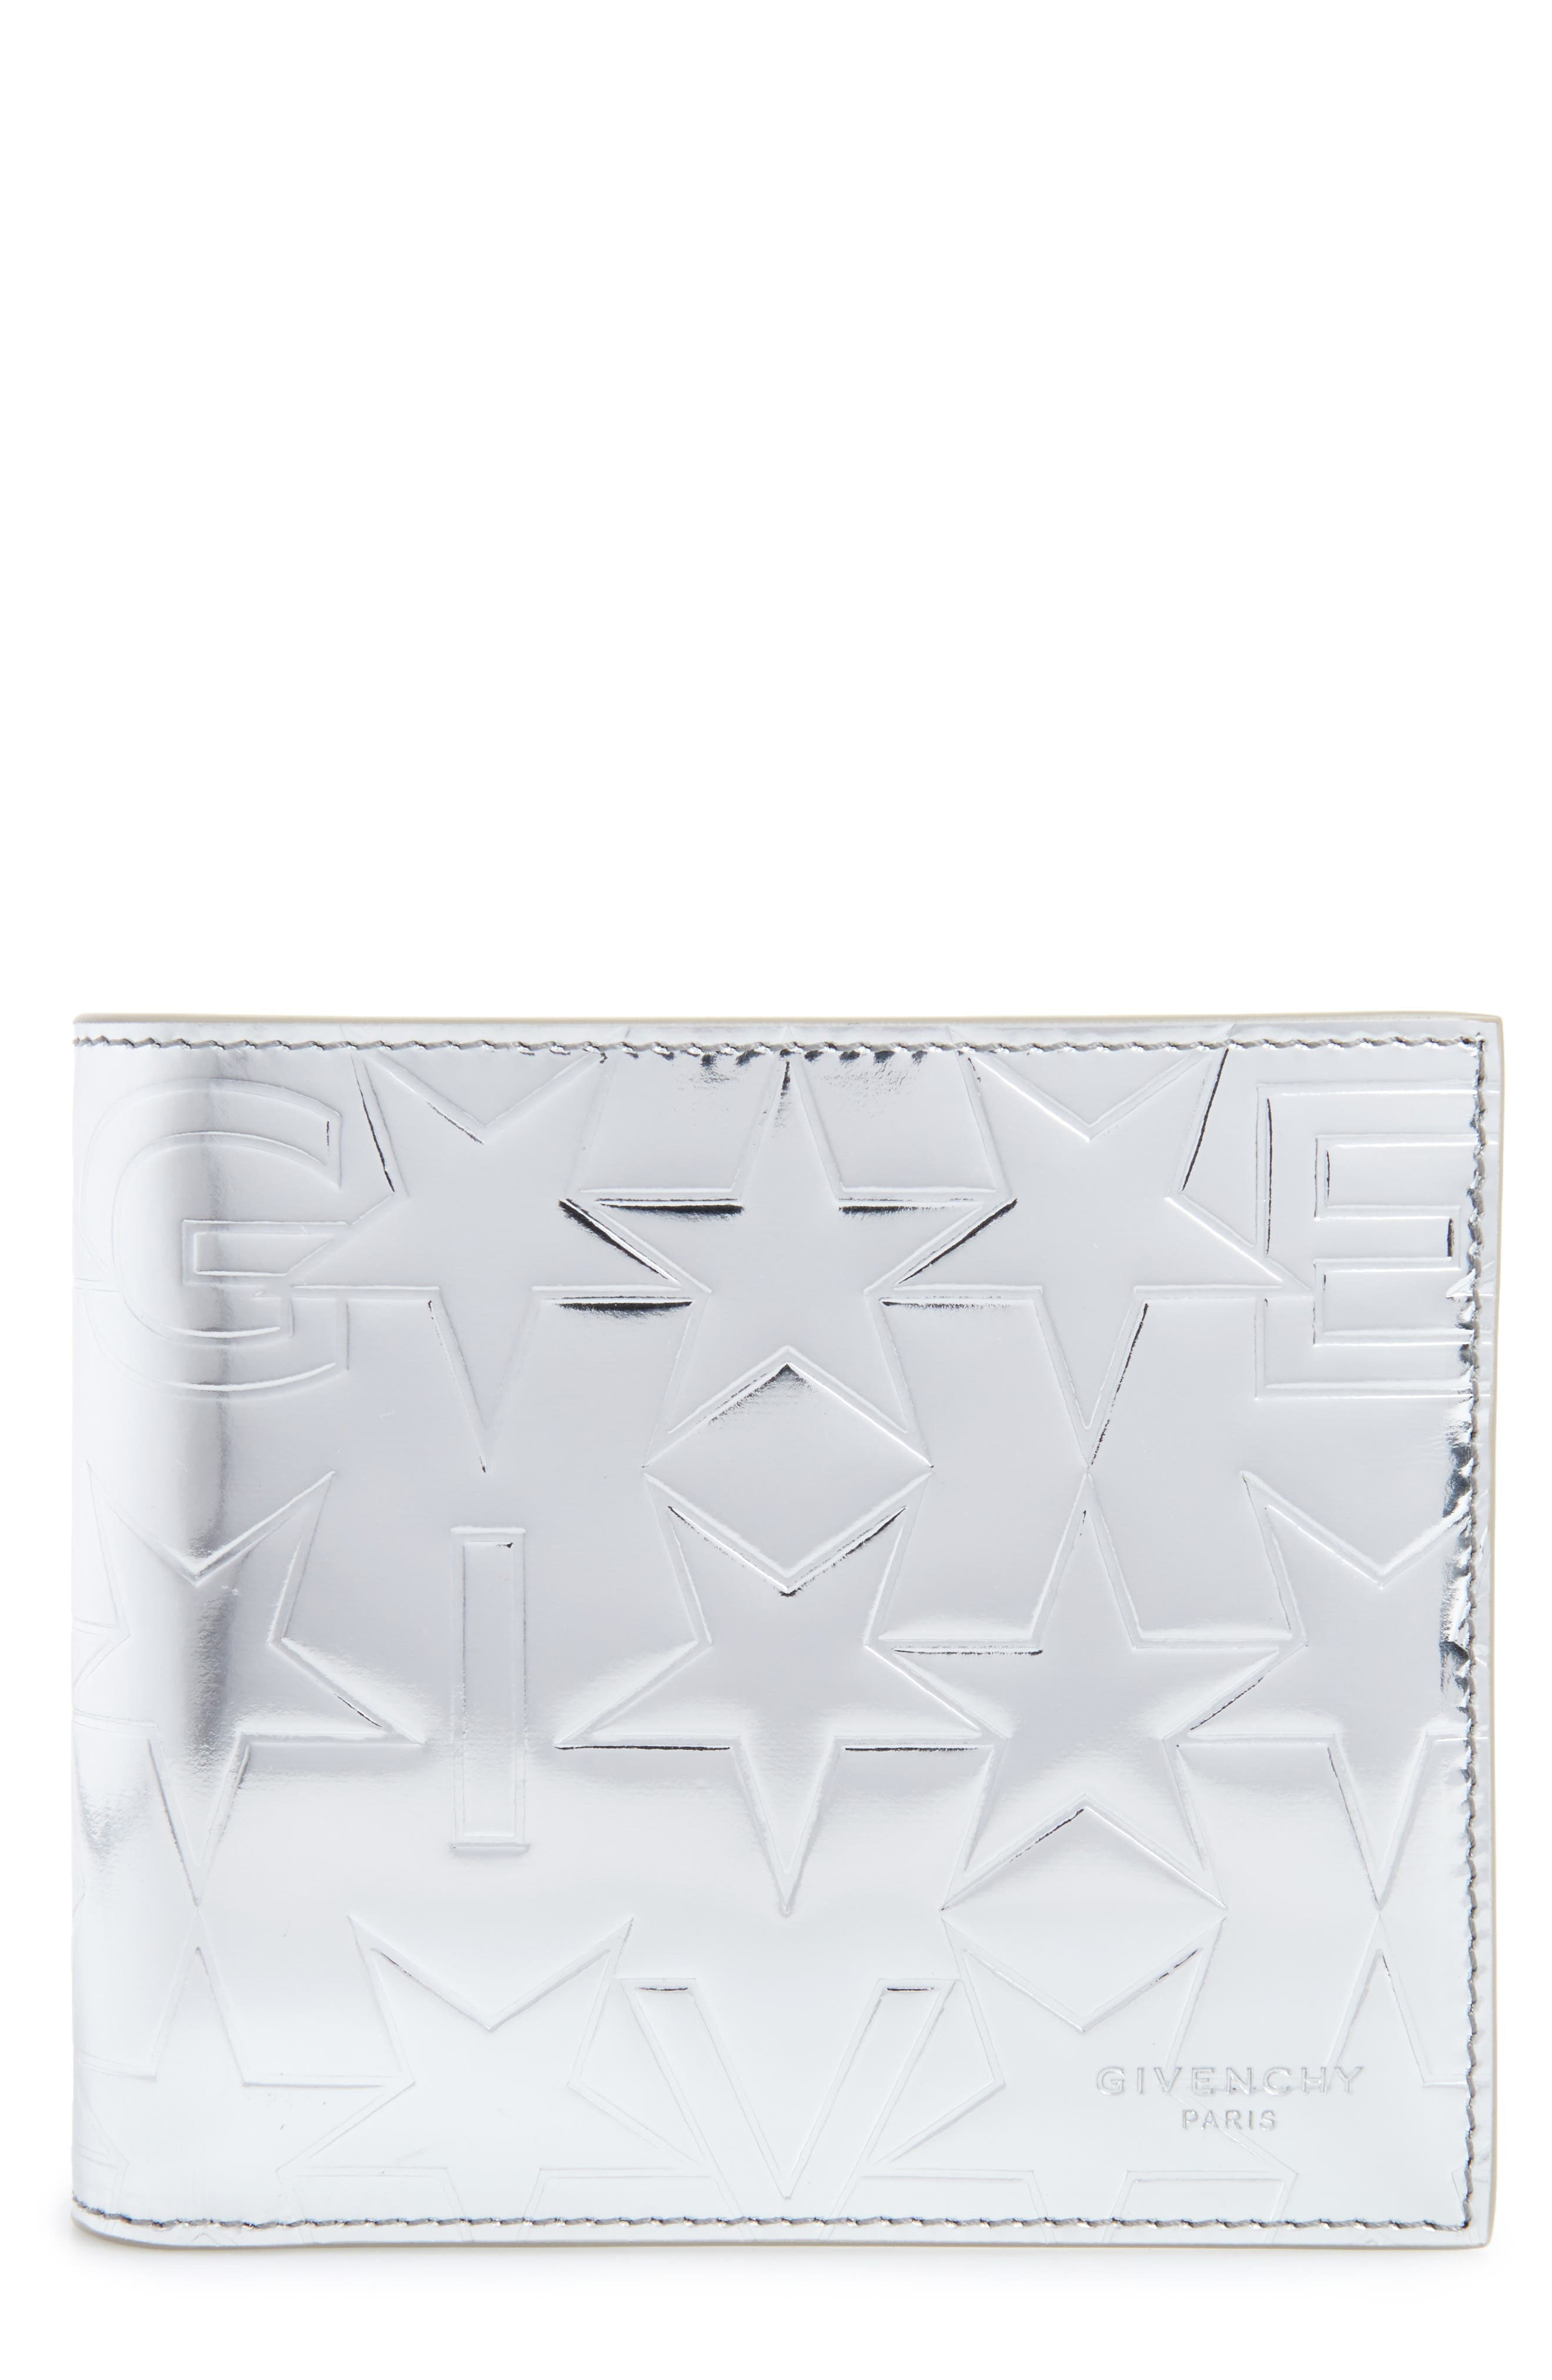 Givenchy Embossed Leather Wallet